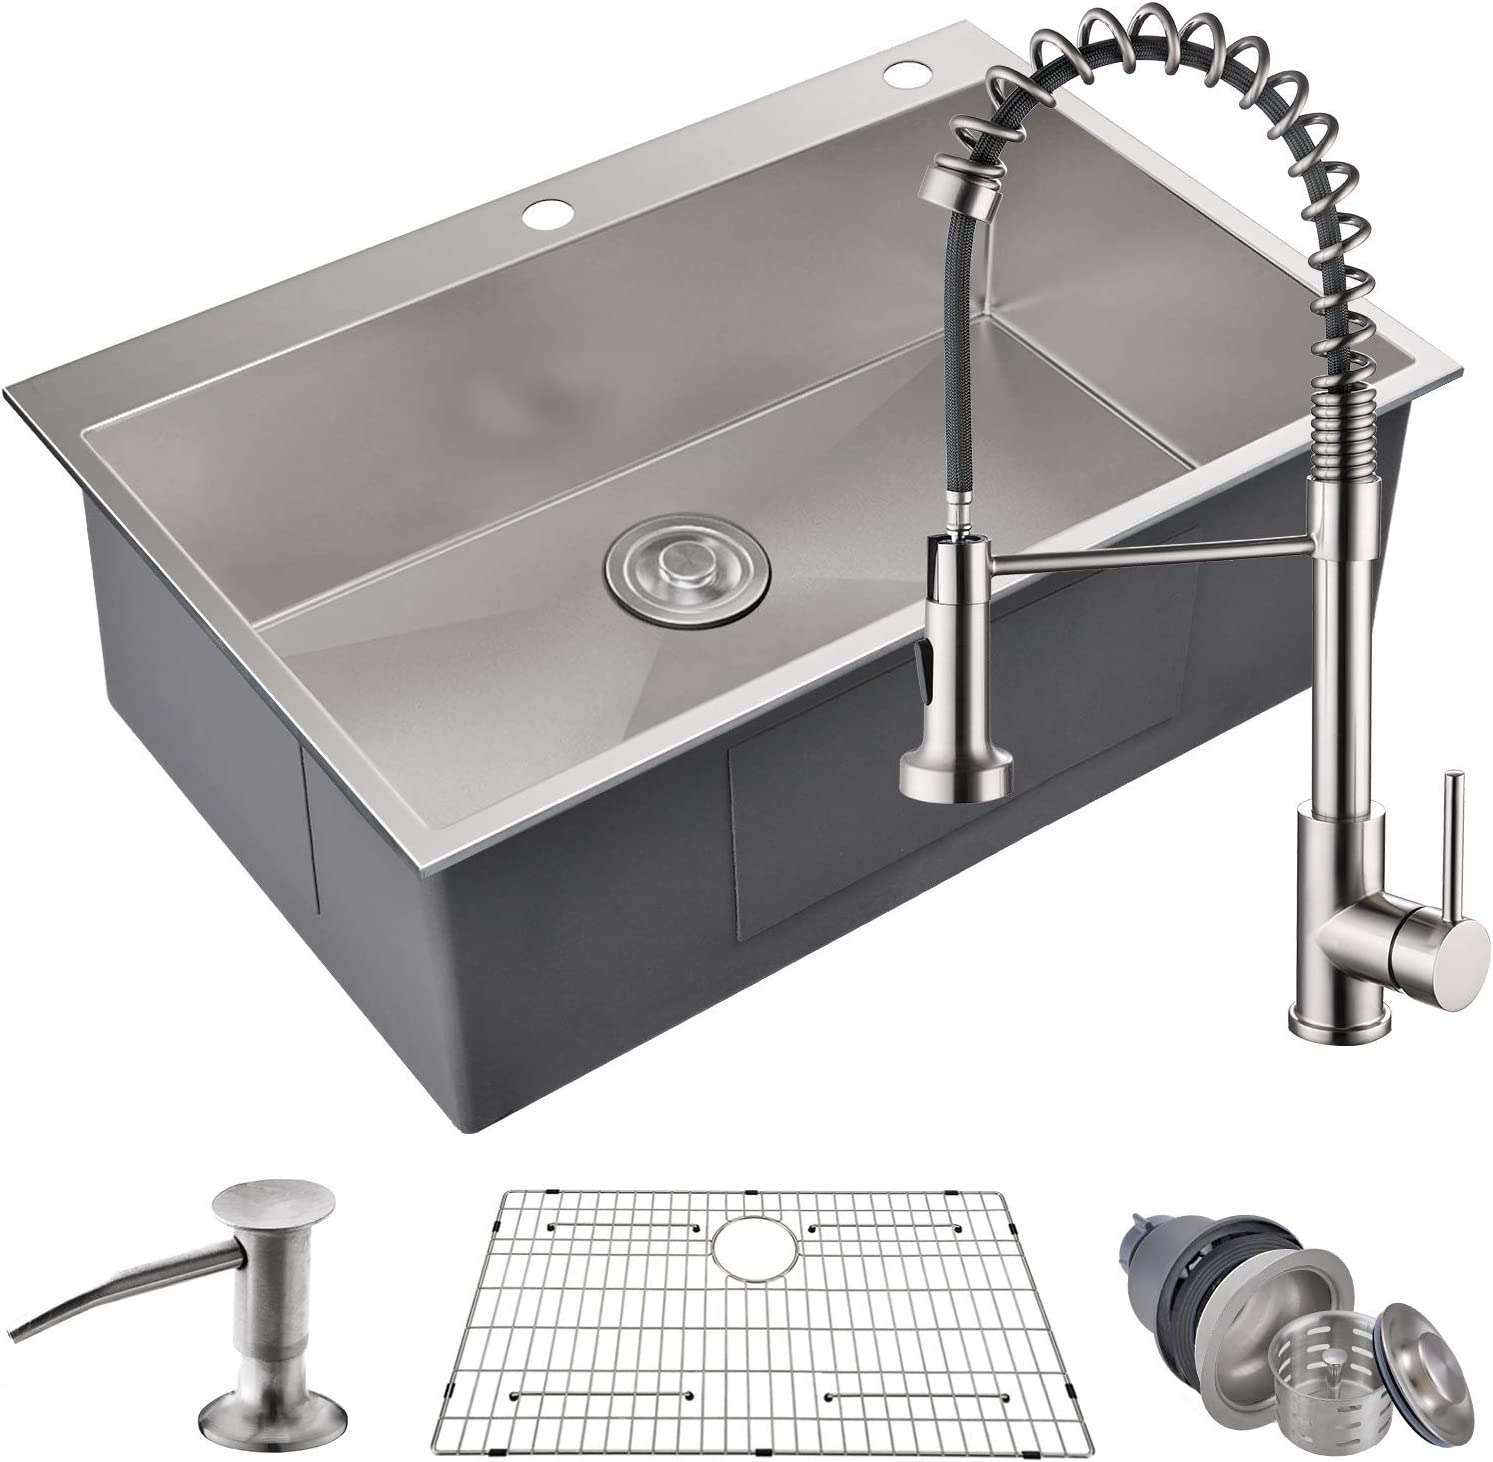 MOWA HTS3322 Pro Series Handmade 33 16 Gauge Stainless Steel Topmount Drop-in Single Bowl Kitchen Sink Pull-Down Faucet Combo, Commercial Deep Sink Spring Faucet, w Basket Strainer Sink Grid